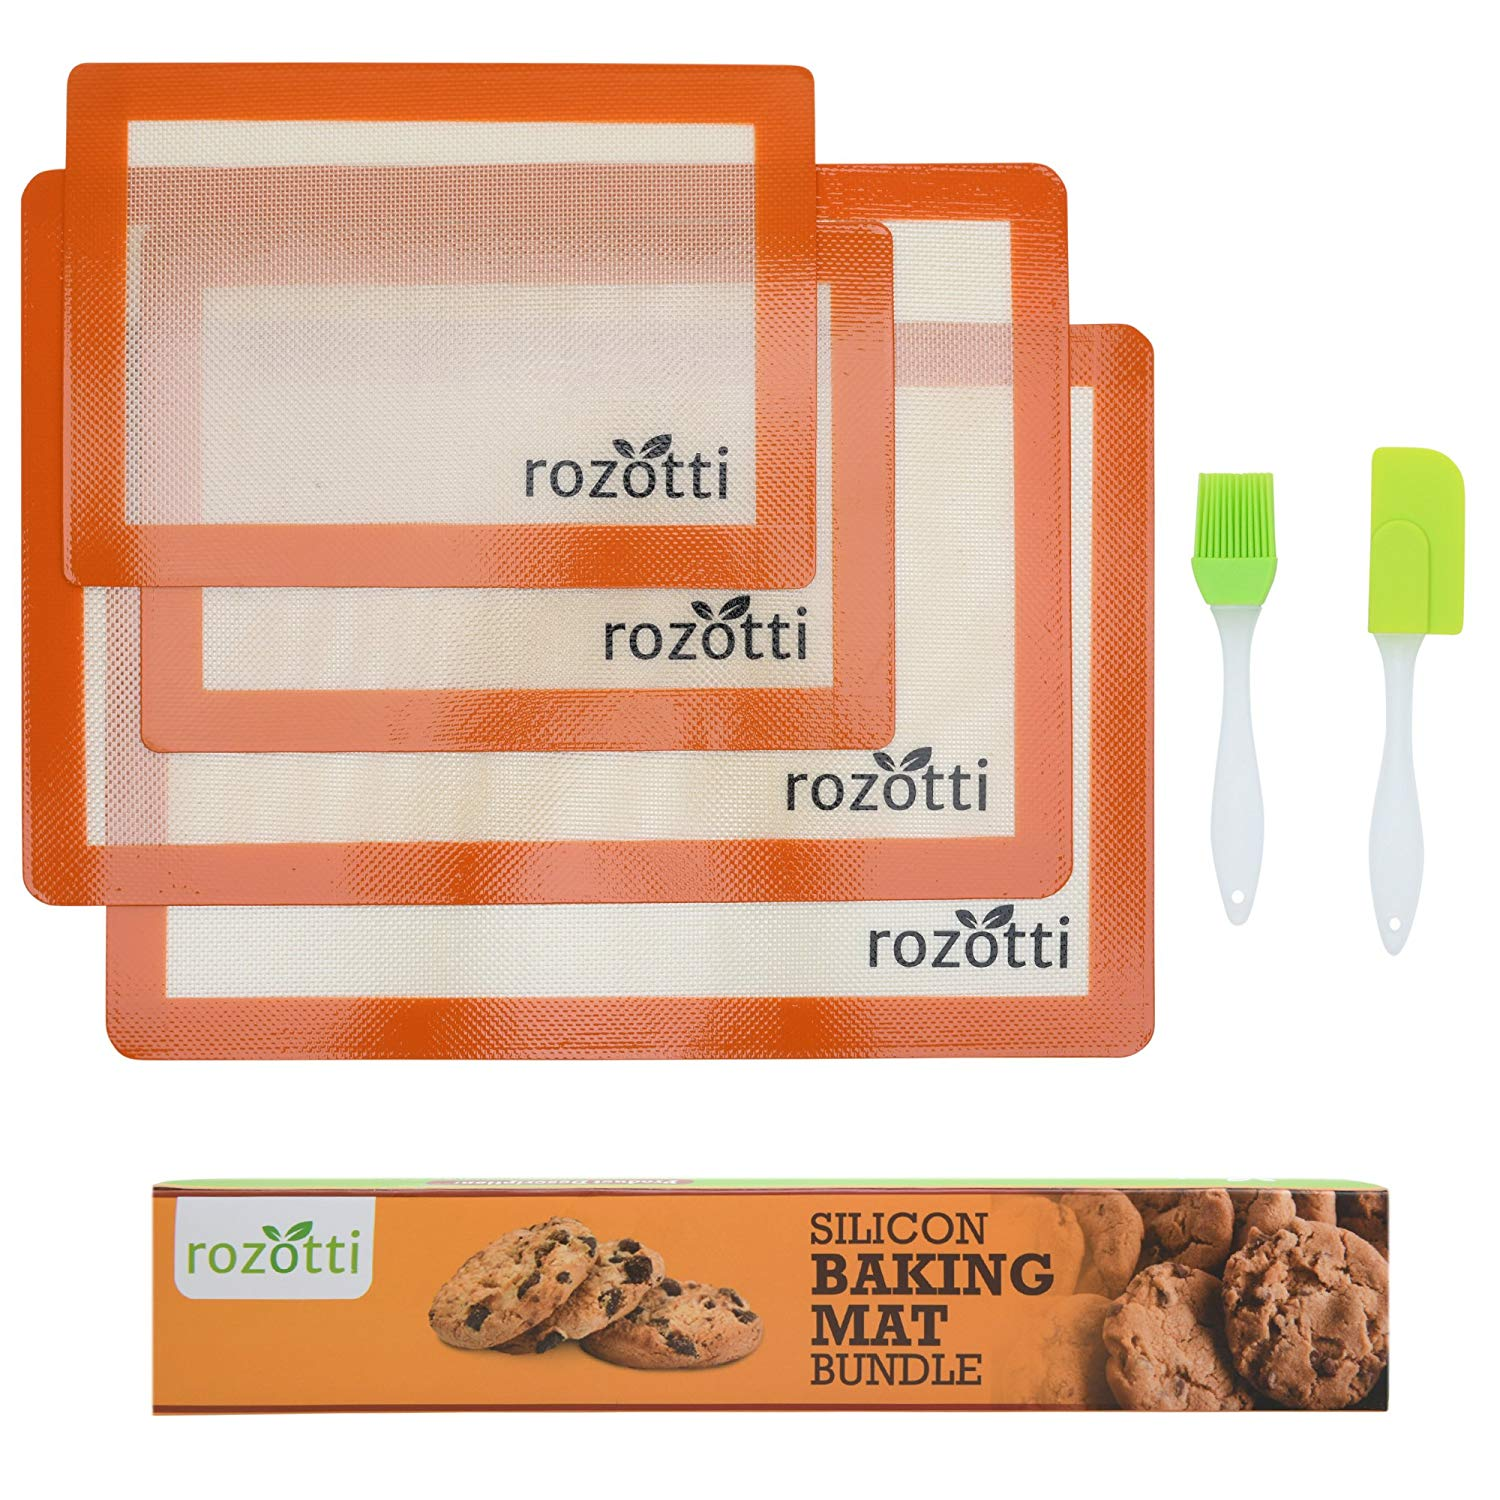 Rozotti Silicone Baking Mat Bundle (6-Piece Set)